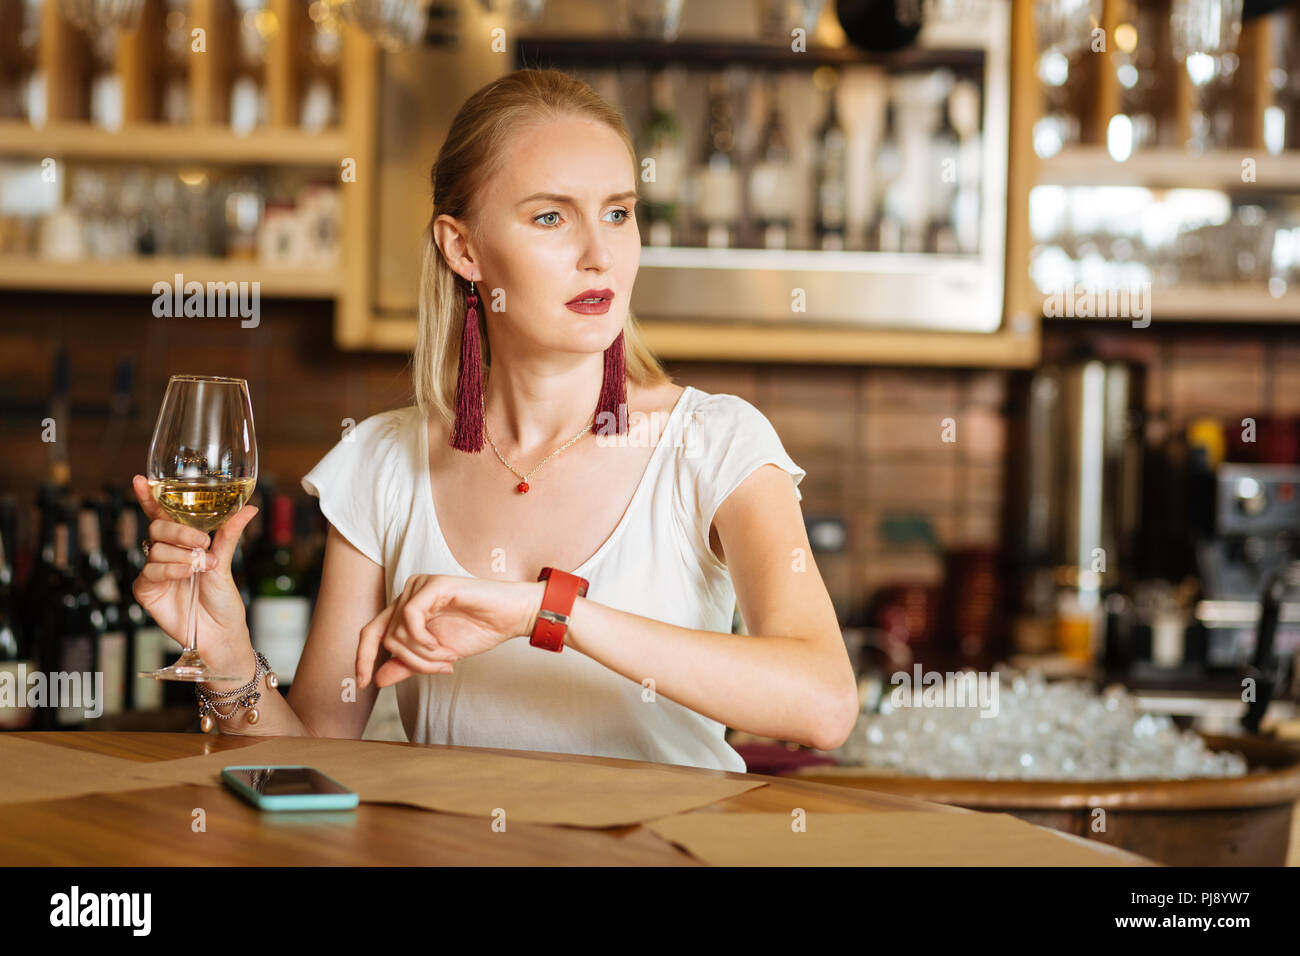 Sad cheerless woman waiting for her friend - Stock Image